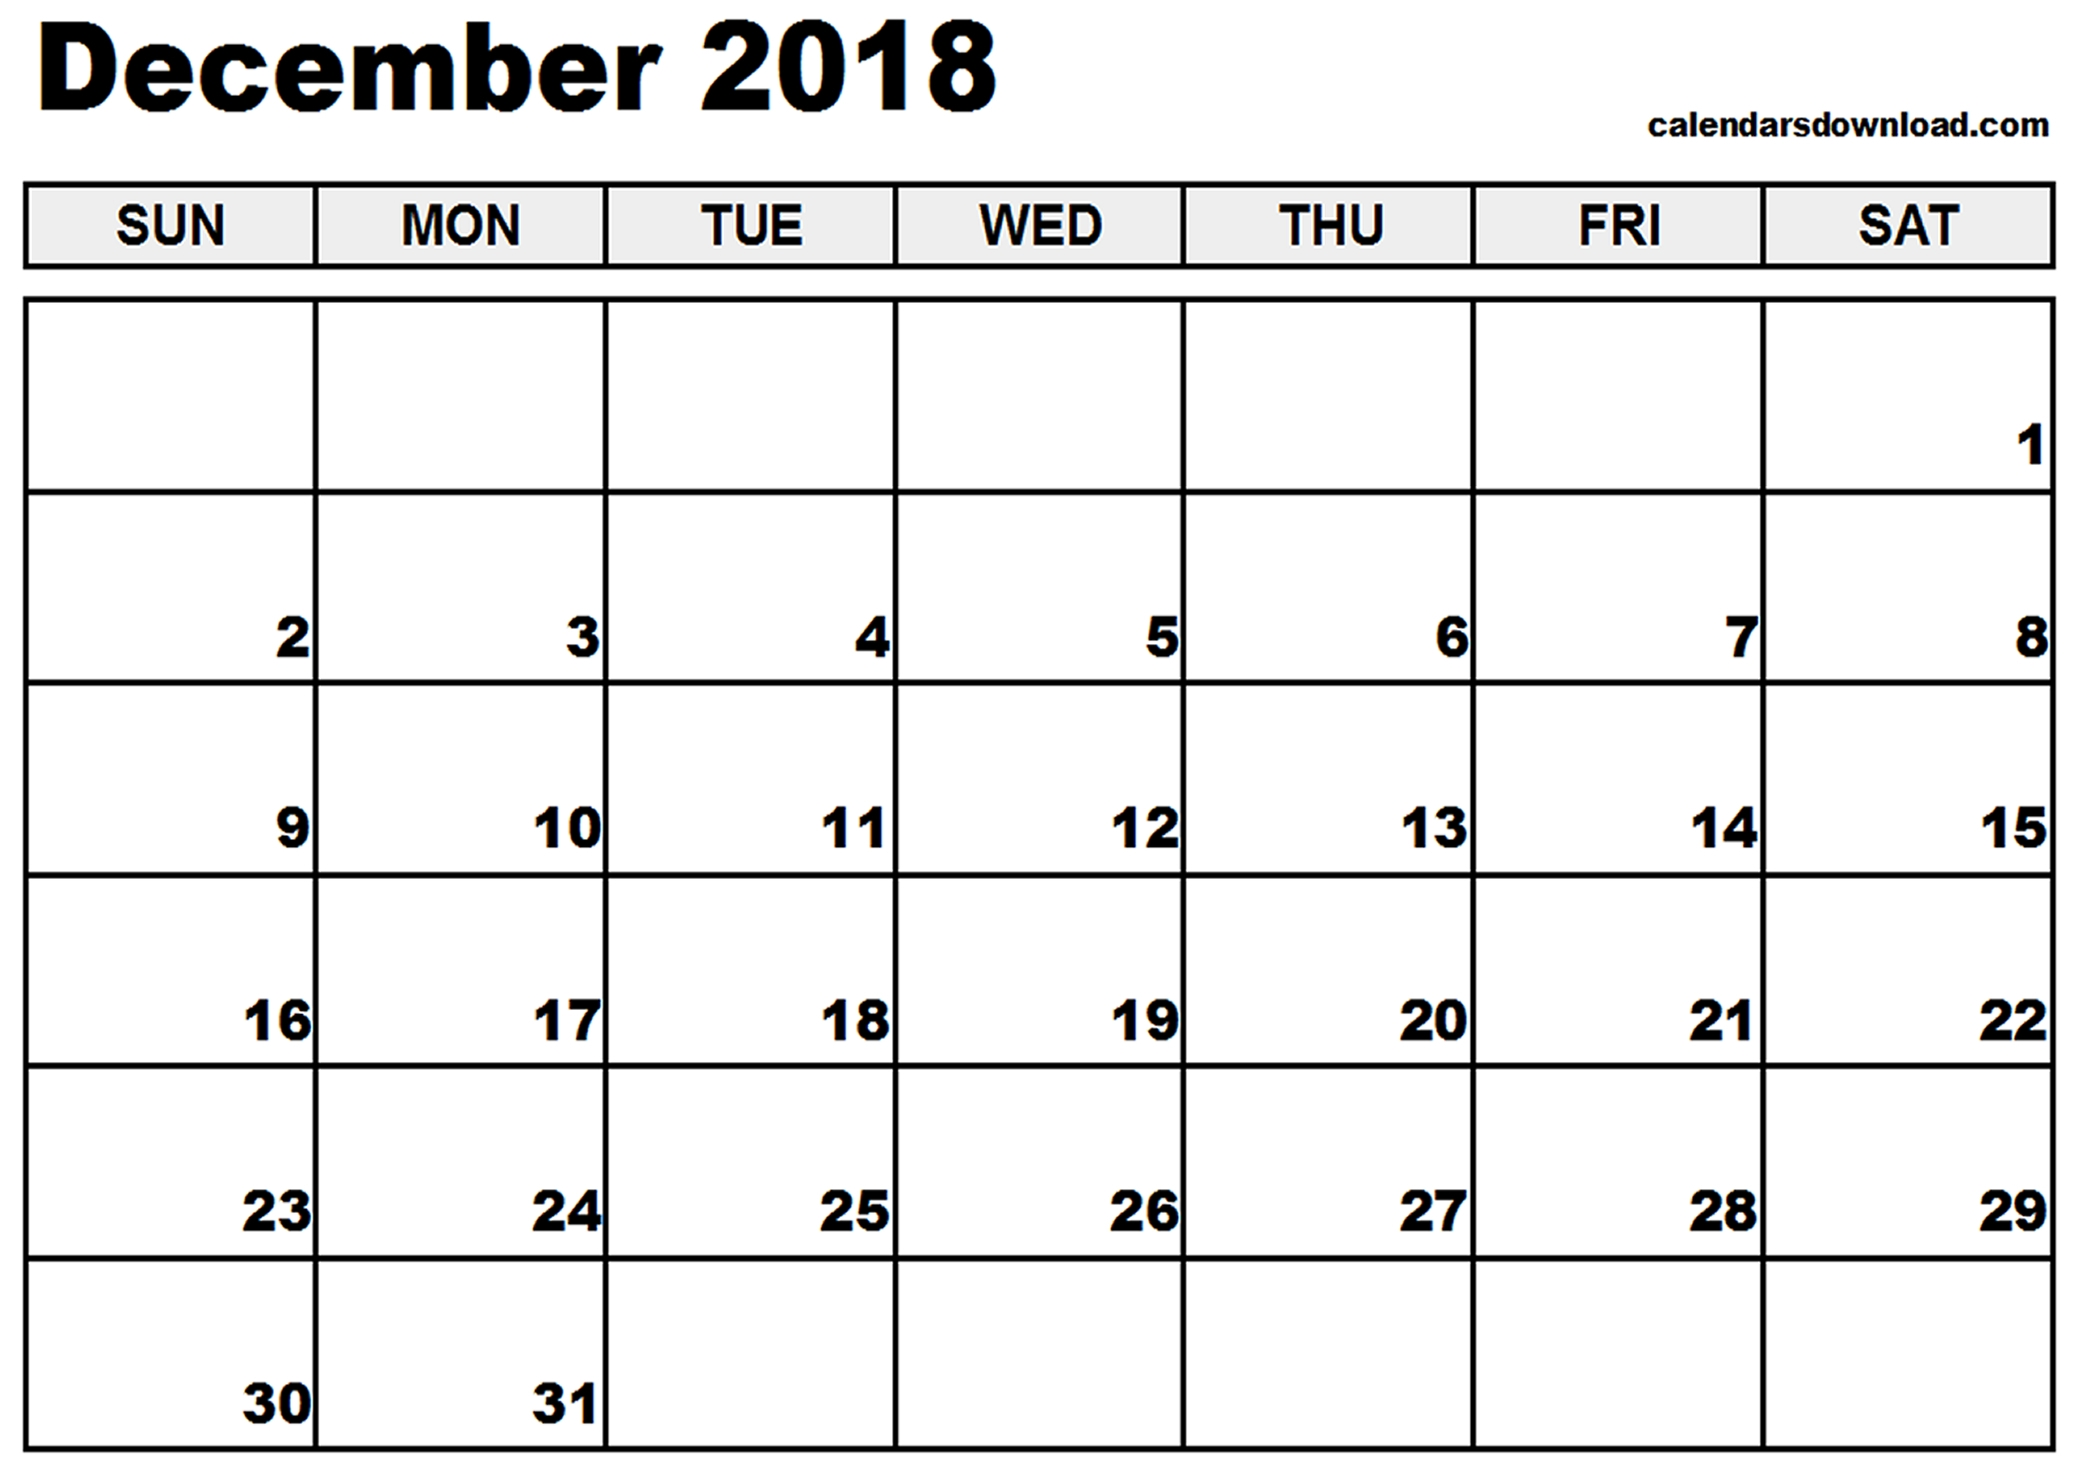 august december 2018 calendar 2018 Calendar August Through December erdferdf